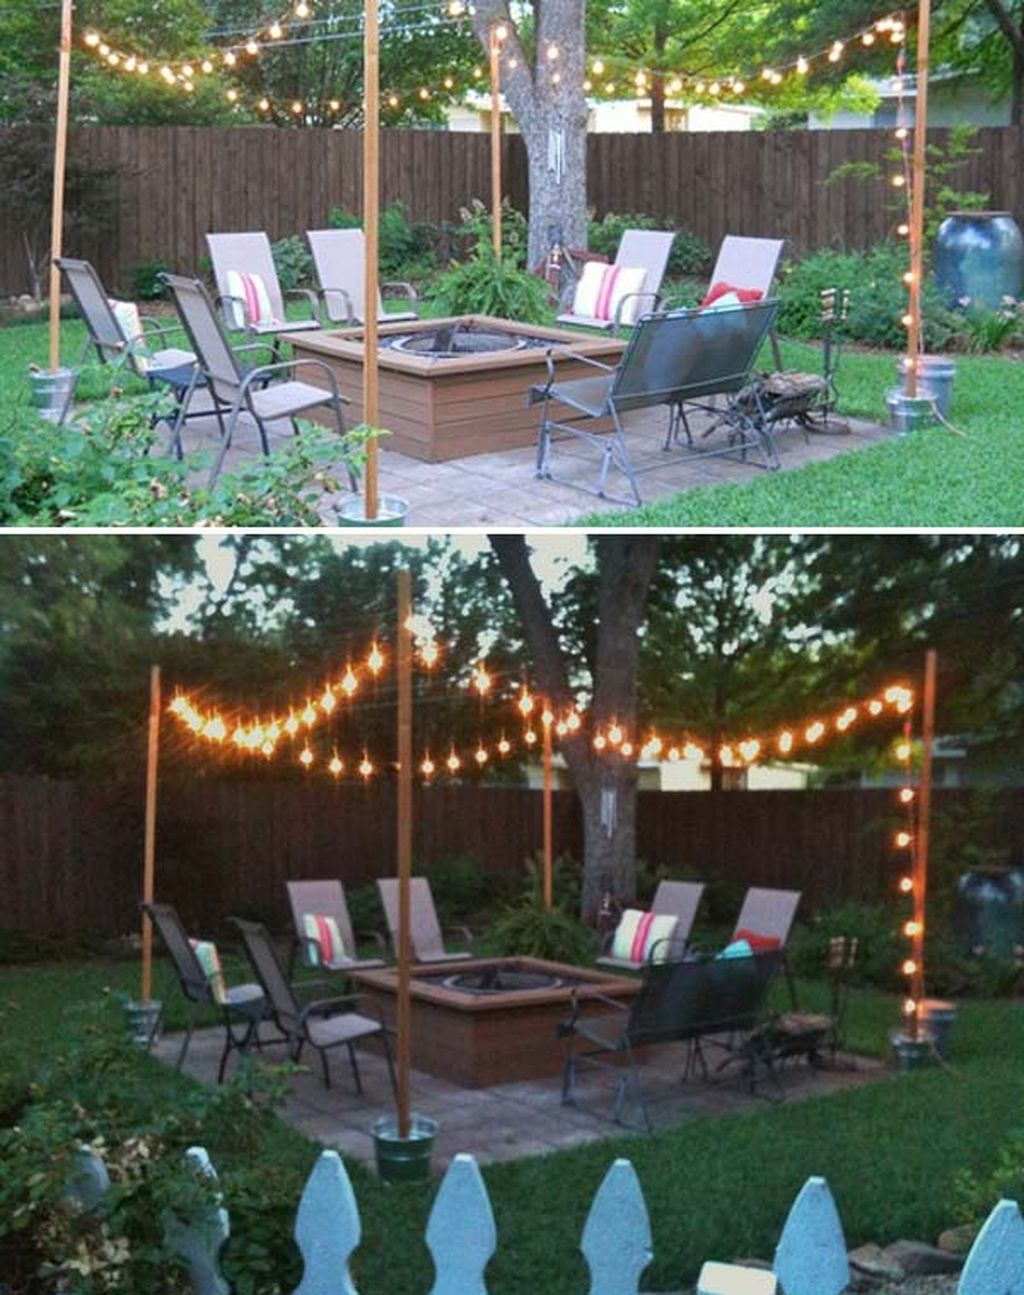 65 Best Awesome Diy Firepits Ideas For Your Backyard Moincas Mess intended for Pinterest Backyard Ideas